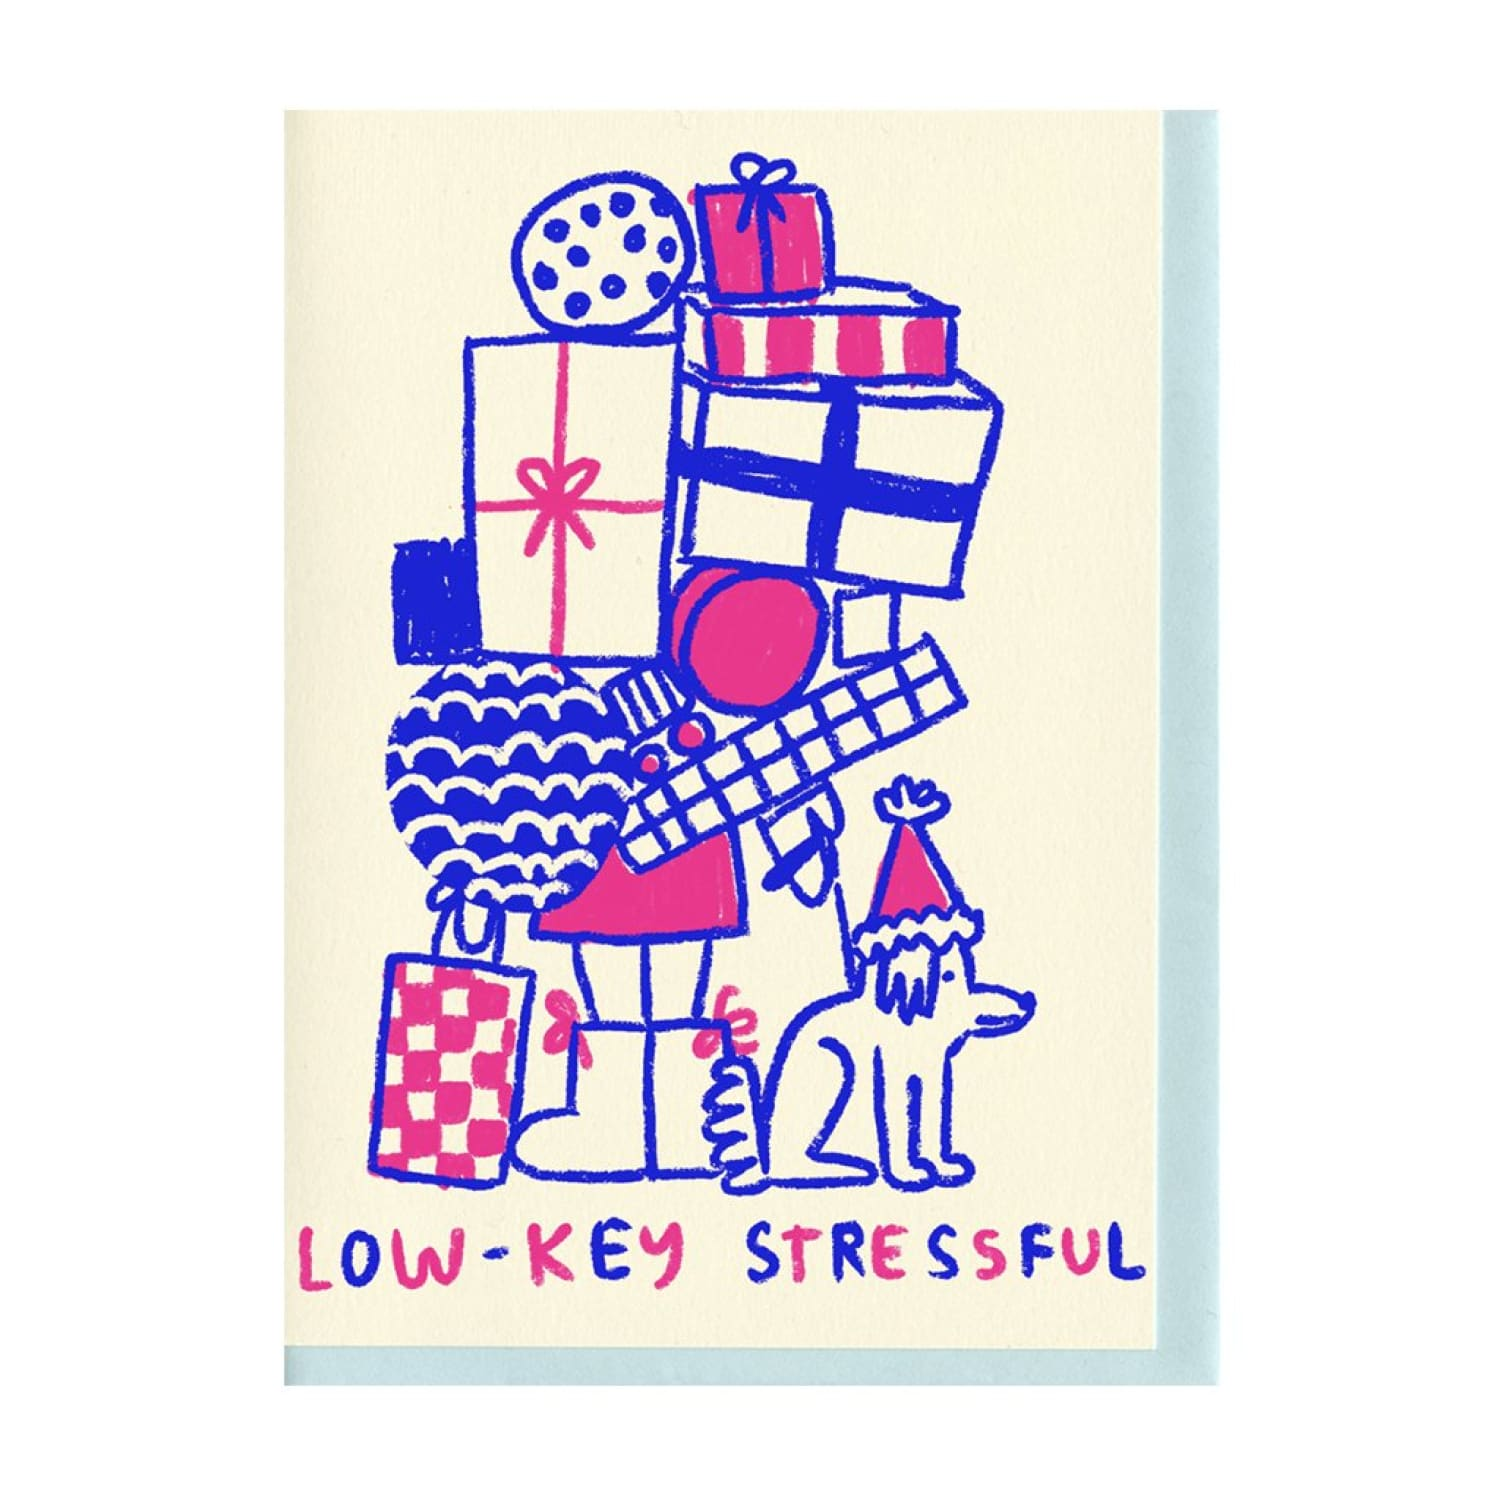 Low-key Stressful Holiday Card Blank Card, Cards, Christmas,